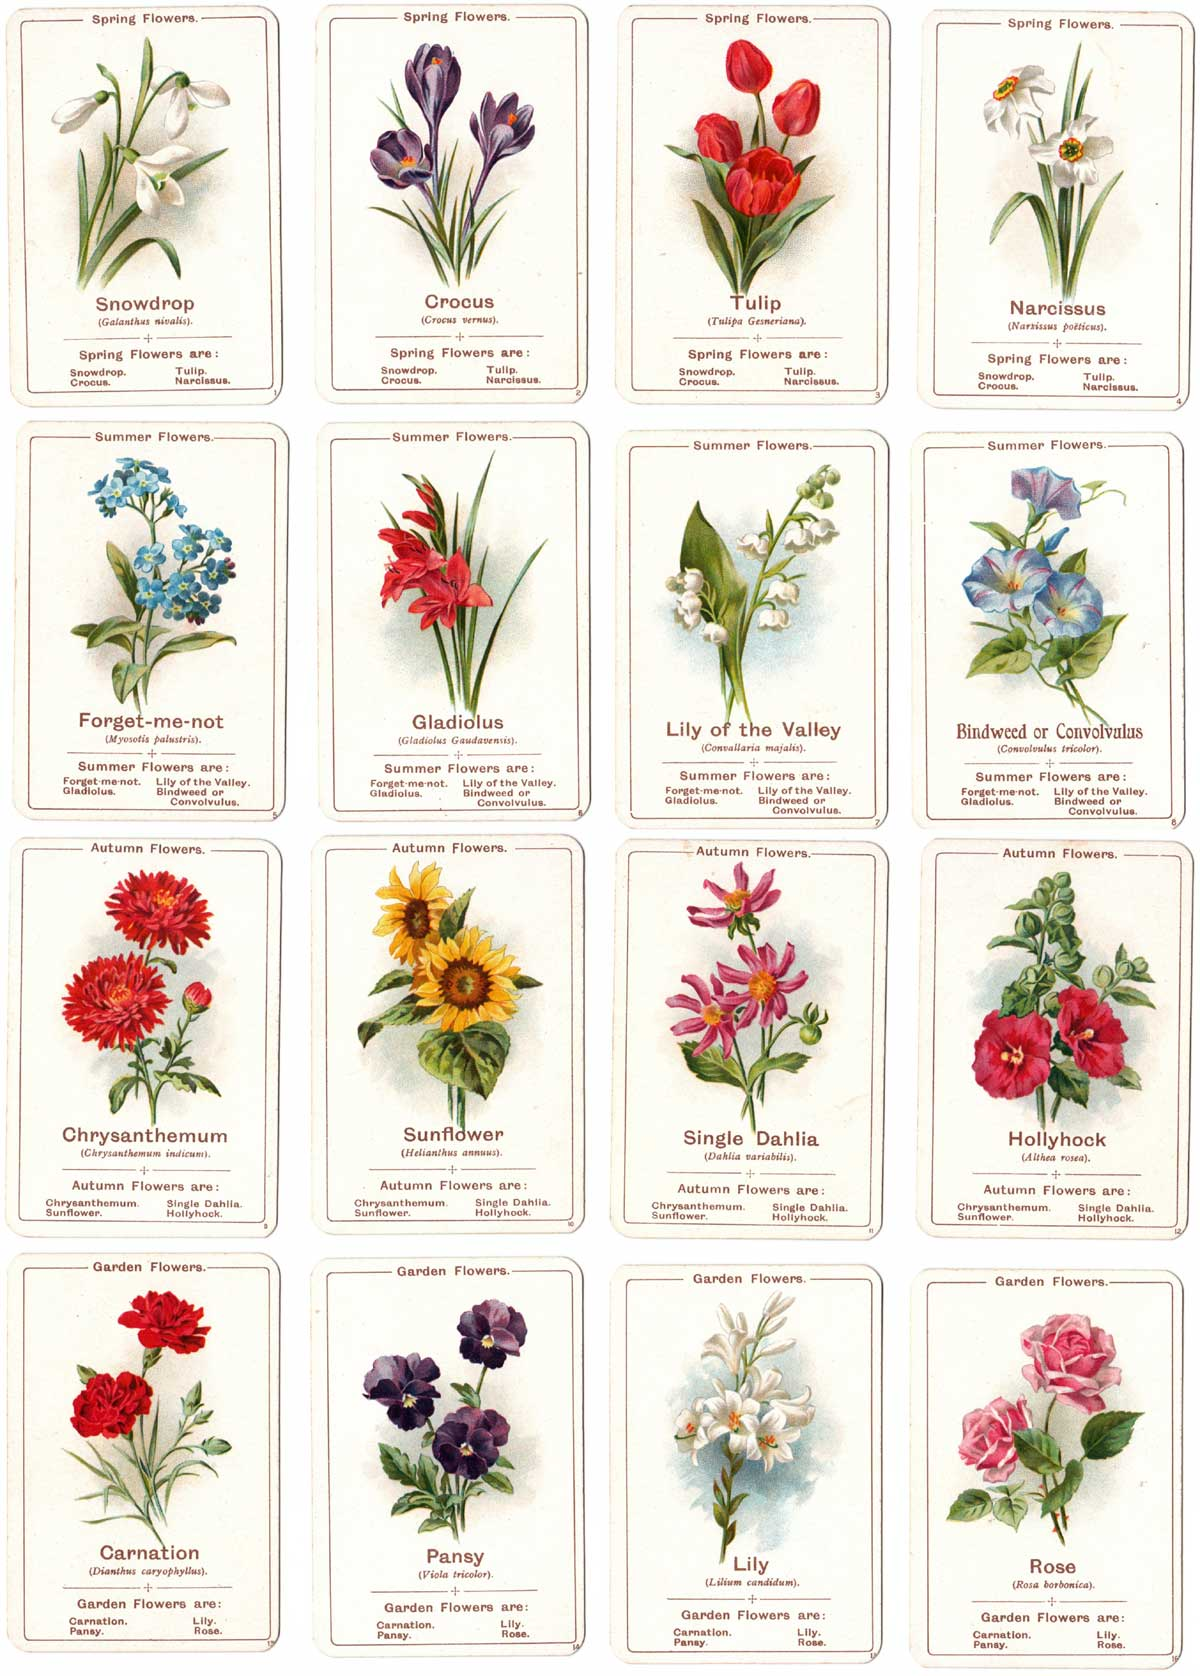 'Flora' card game published by C.W. Faulkner, printed by Dondorf, 1903